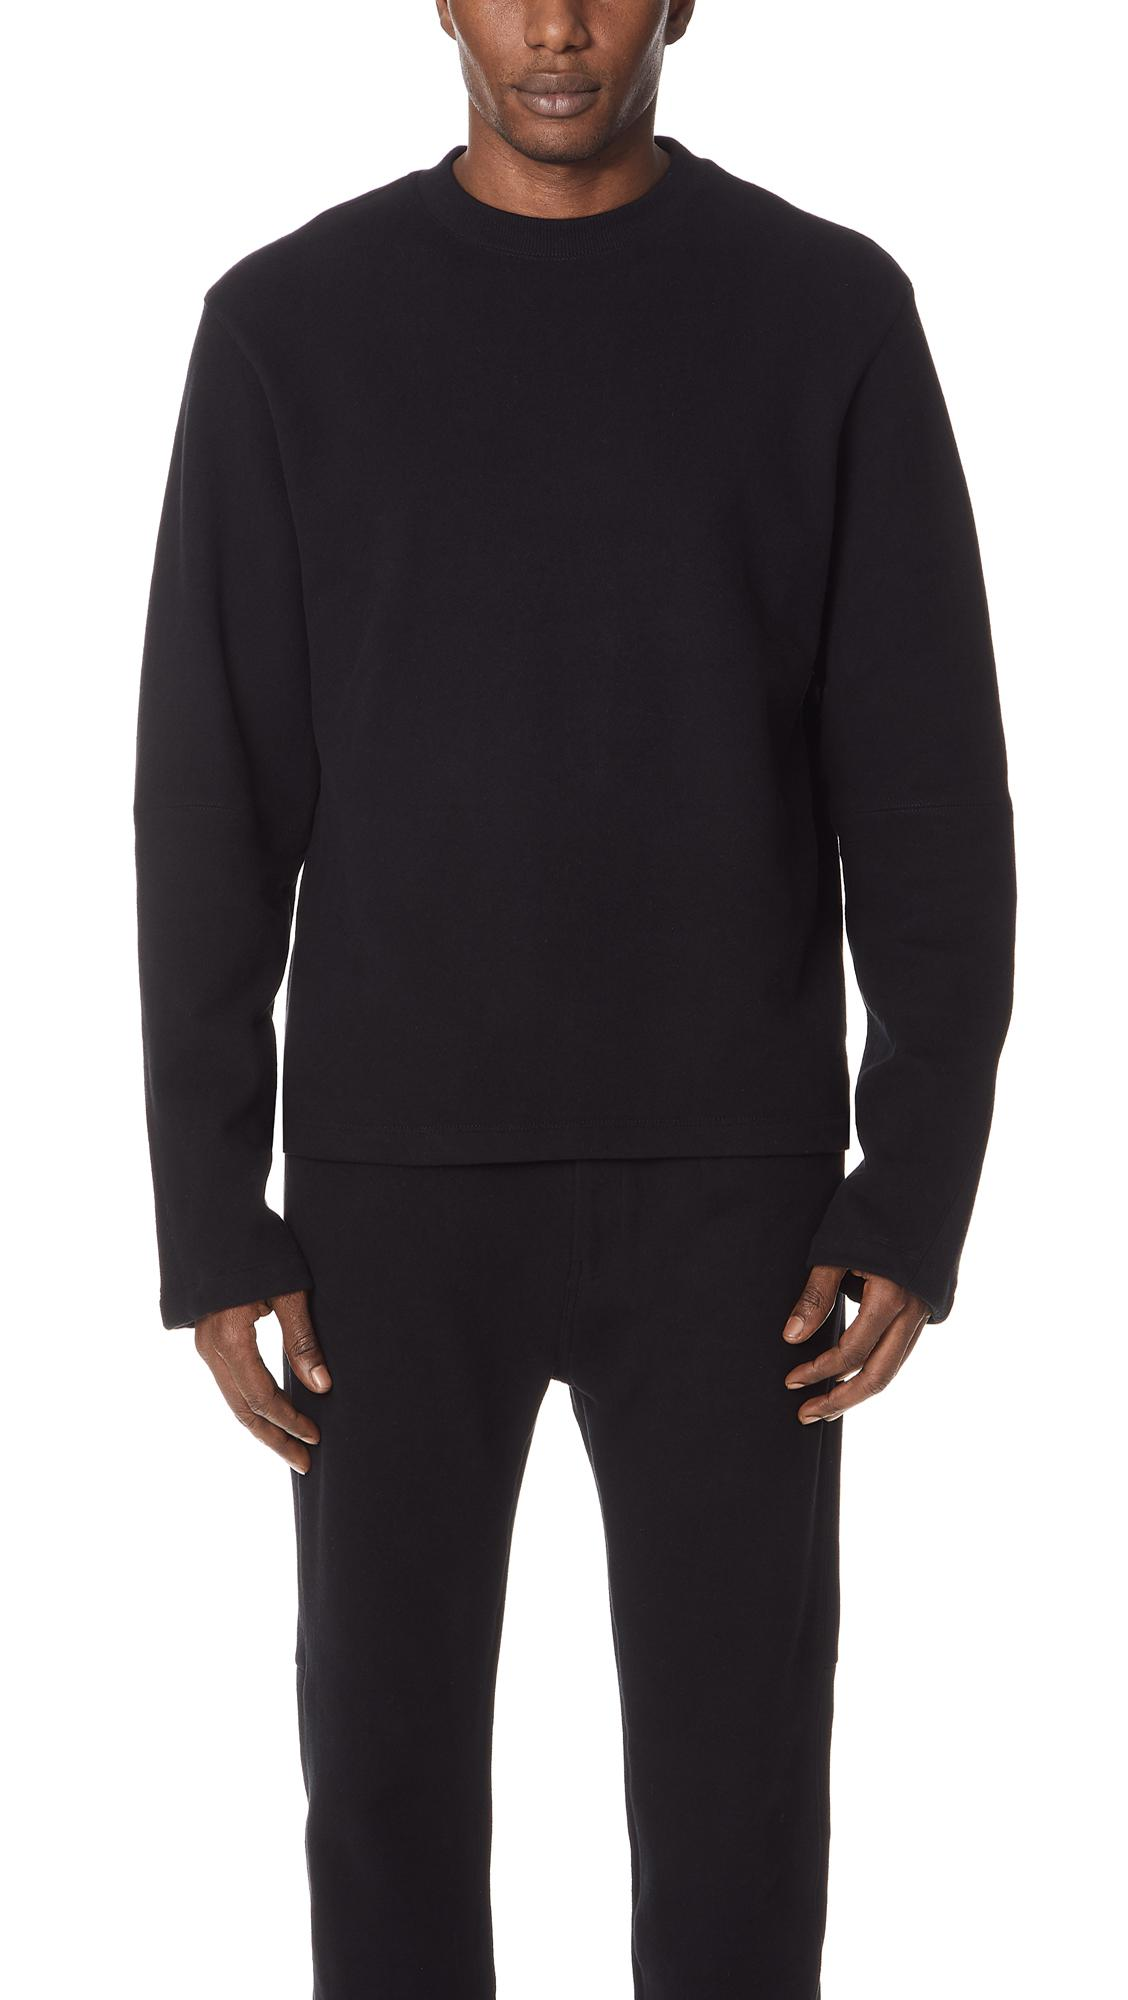 Cheap Limited Edition ribbed detail sweatshirt - Black Helmut Lang Official Online Recommend Cheap New For Sale Discount Codes Clearance Store C36fzG